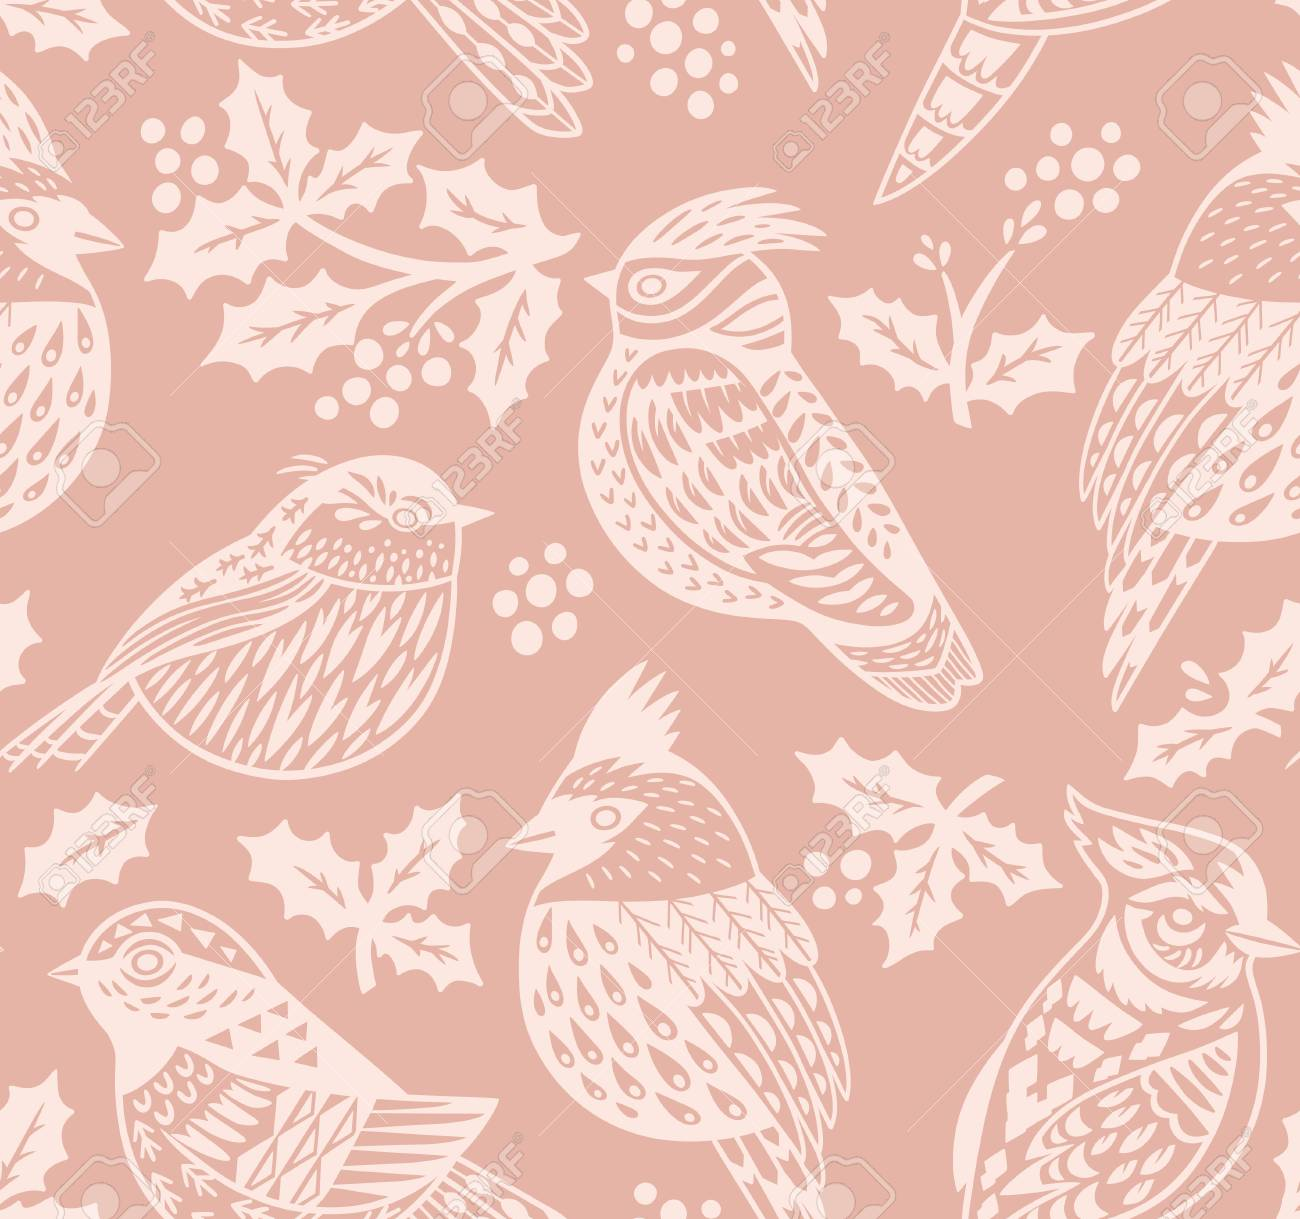 92656898 vintage seamless christmas pattern with ornamental birds and mistletoe in pastel colors perfect for